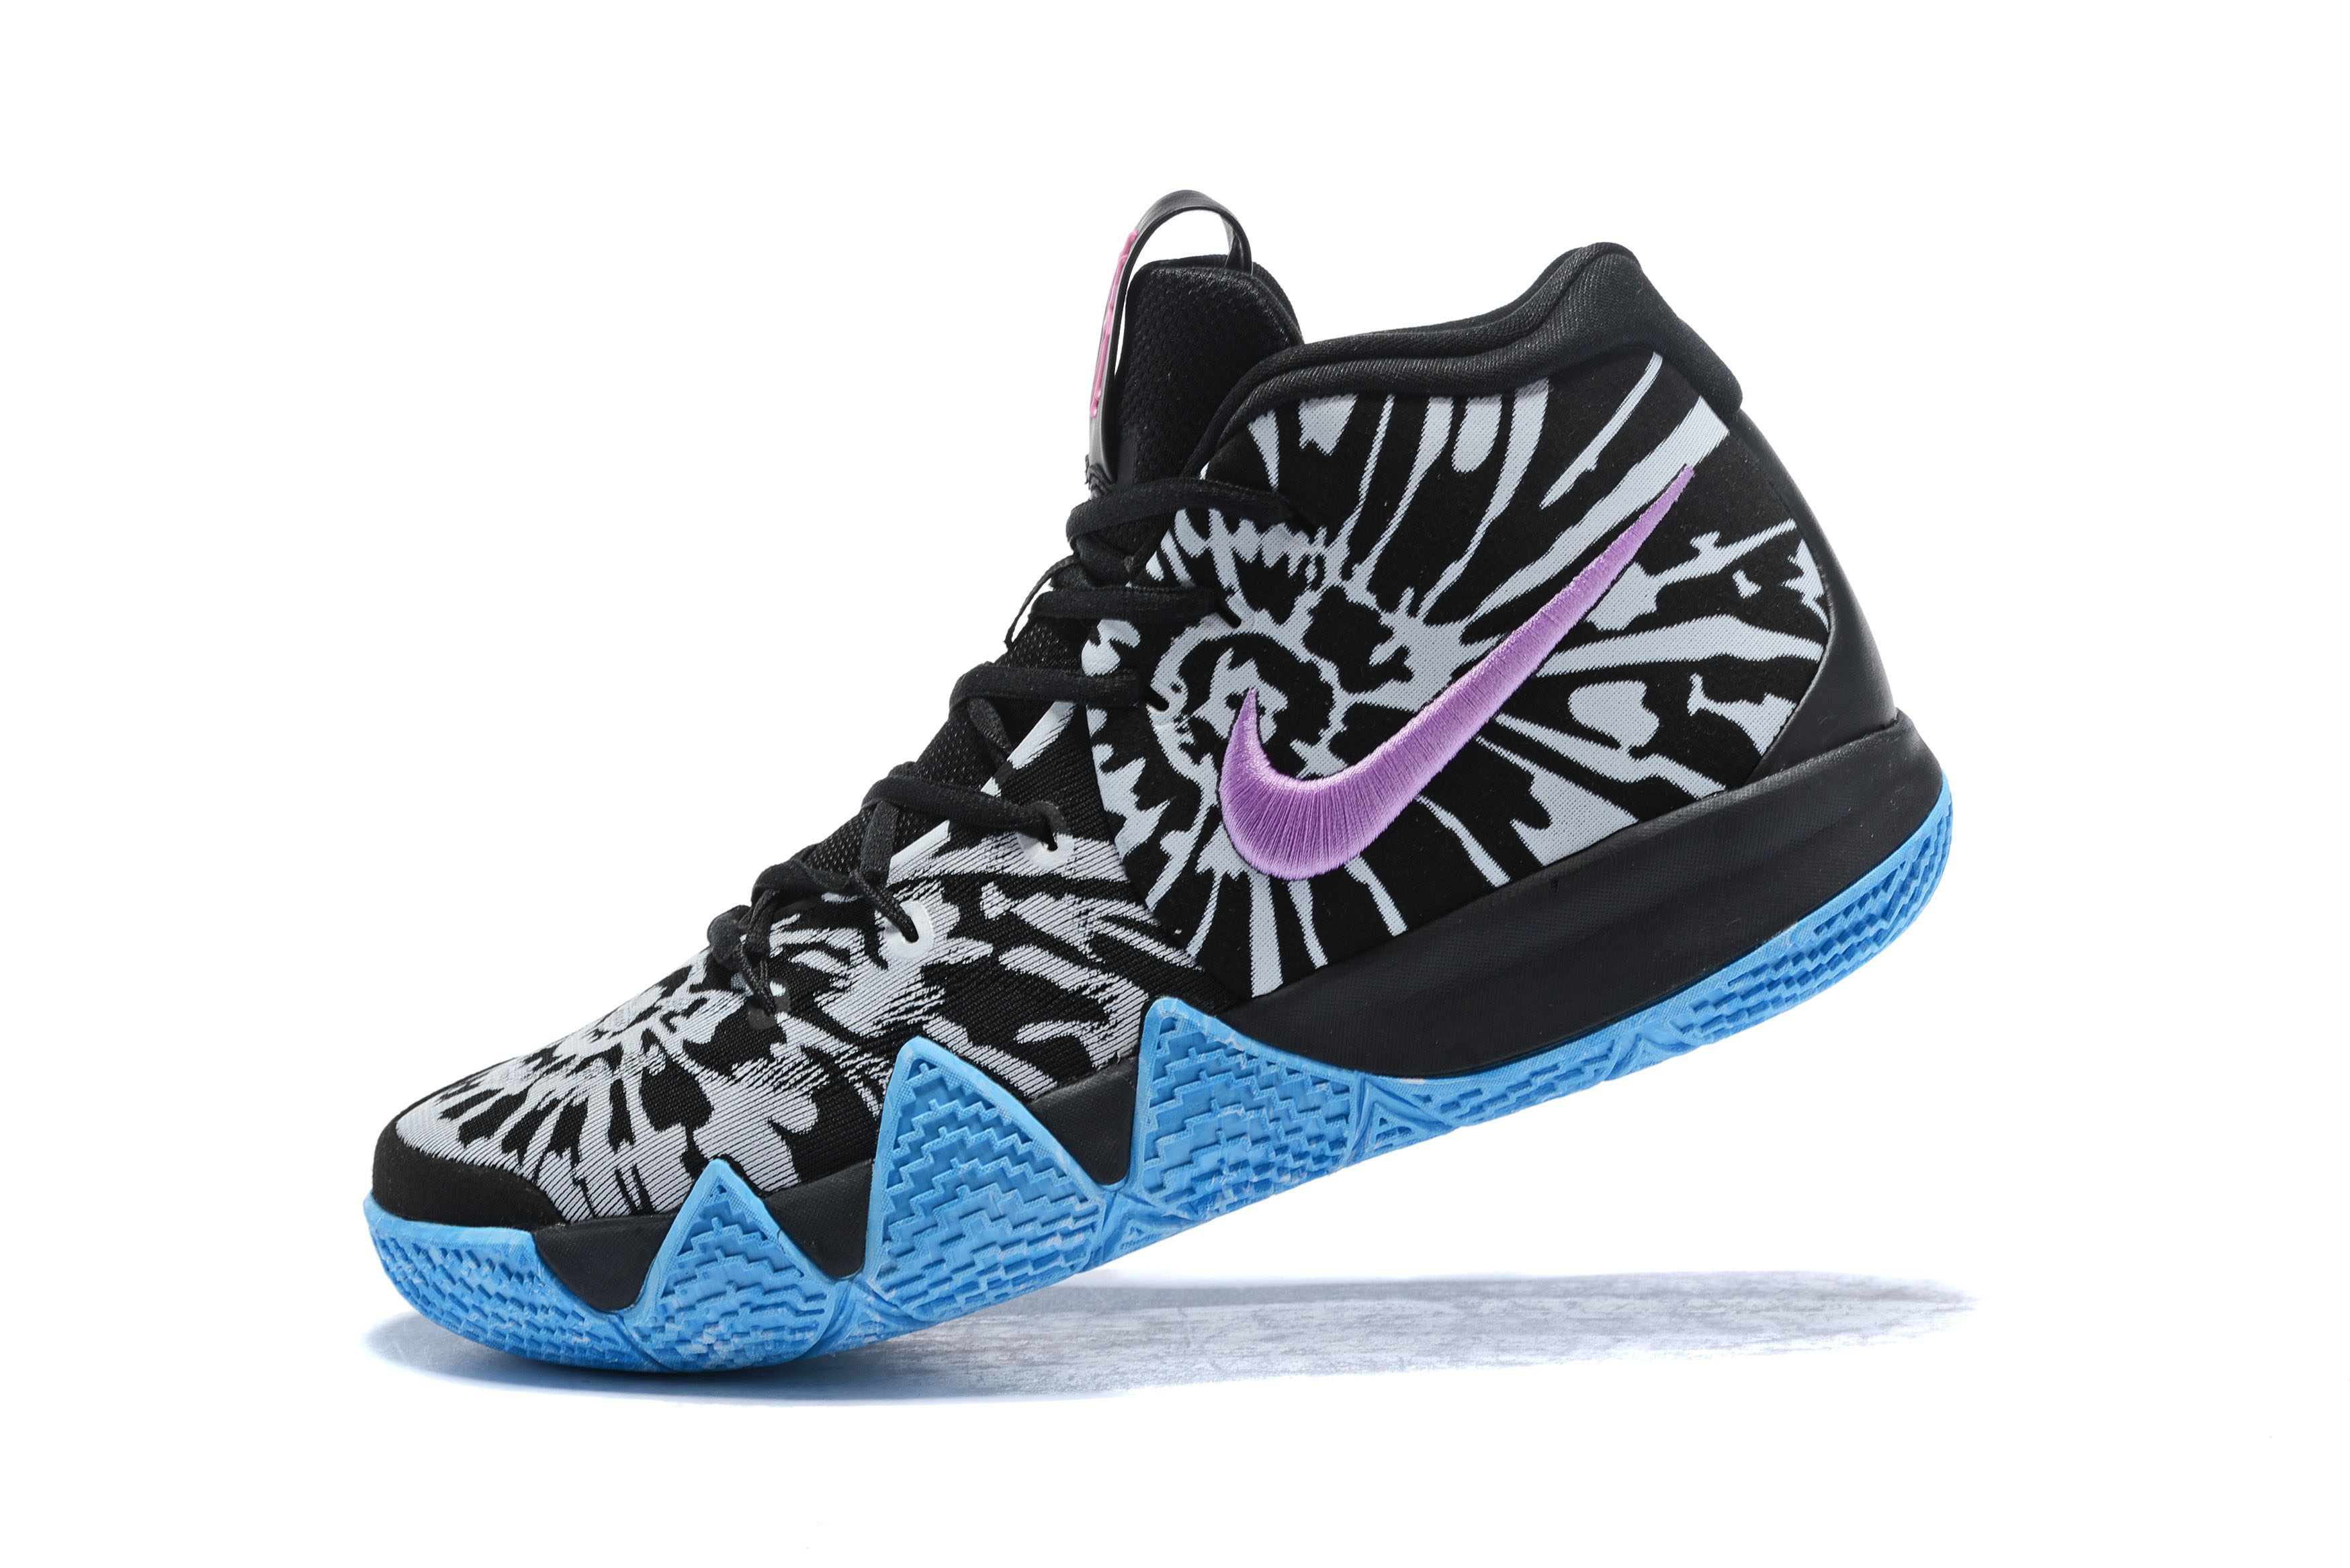 All-Star Nike Kyrie 4 Tie Dye Black/White/Blue/Pink AQ8623-001